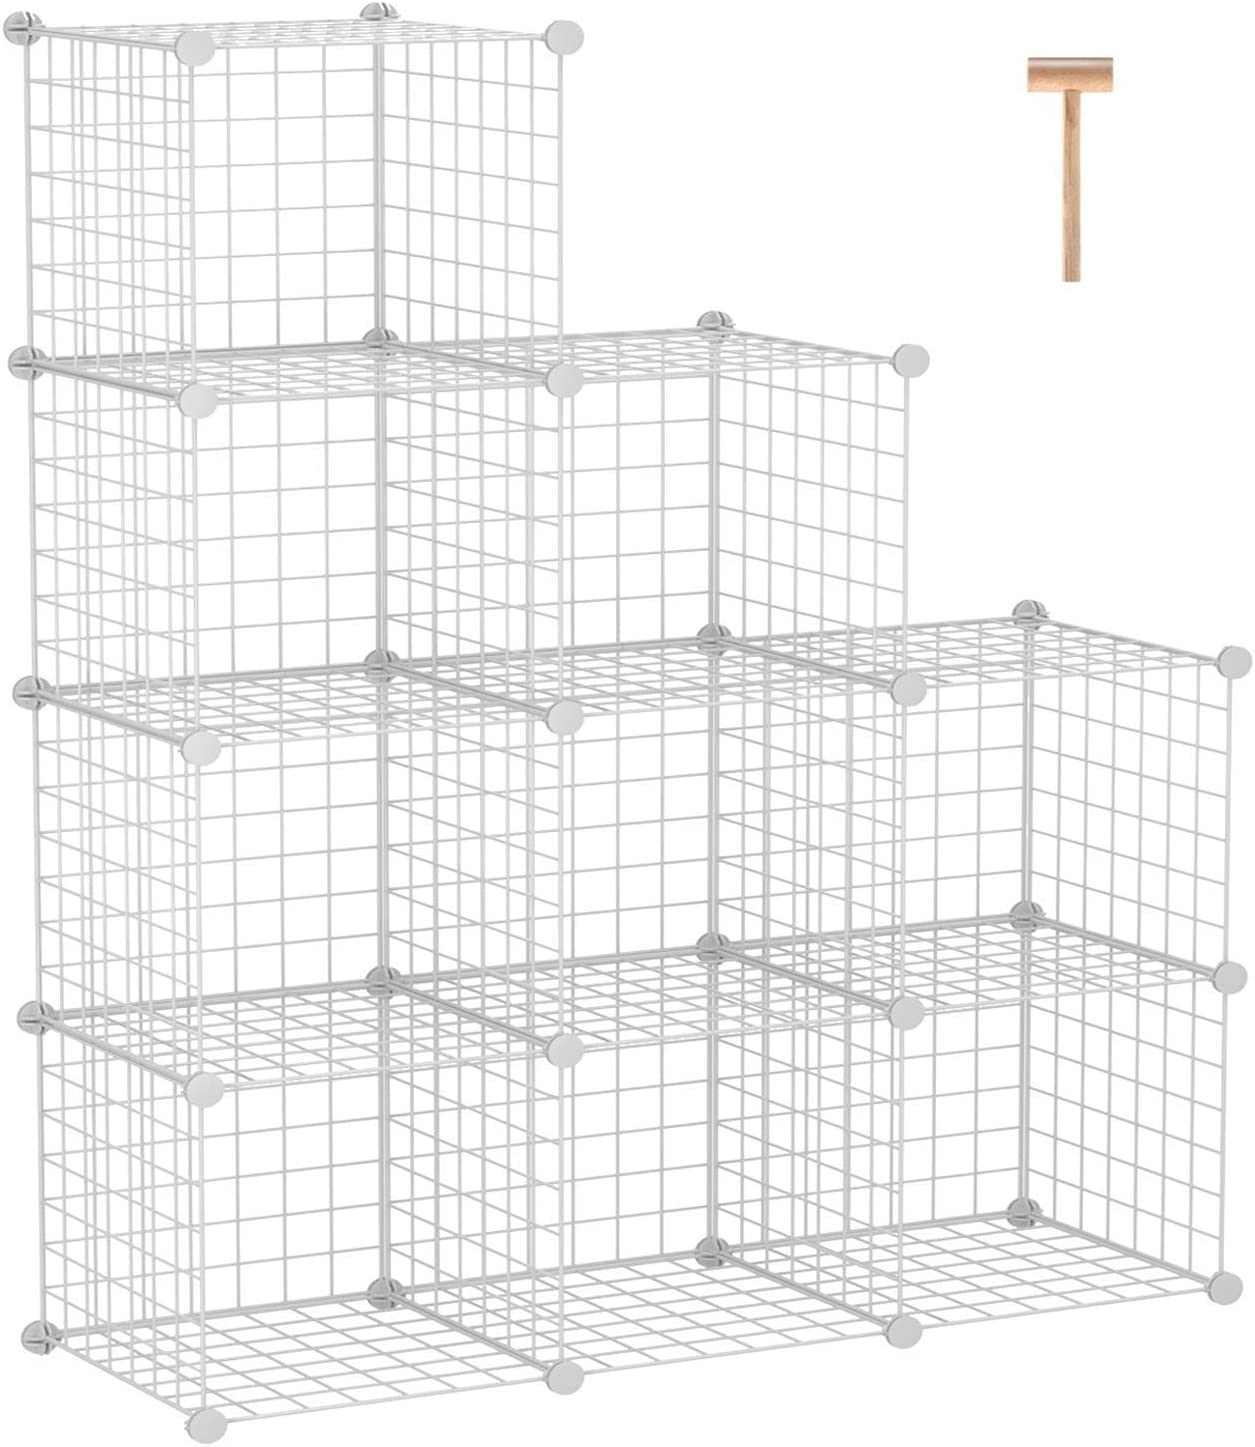 "C&AHOME Metal Wire Cube Storage, 9-Cube Bookcase, Stackable Storage Bins, Modular Book Shelf or Shoe Rack, DIY for Closet, Living Room, Kid's Room, Home Office, 36.6""L x 12.4""W x 48.4""H, White"